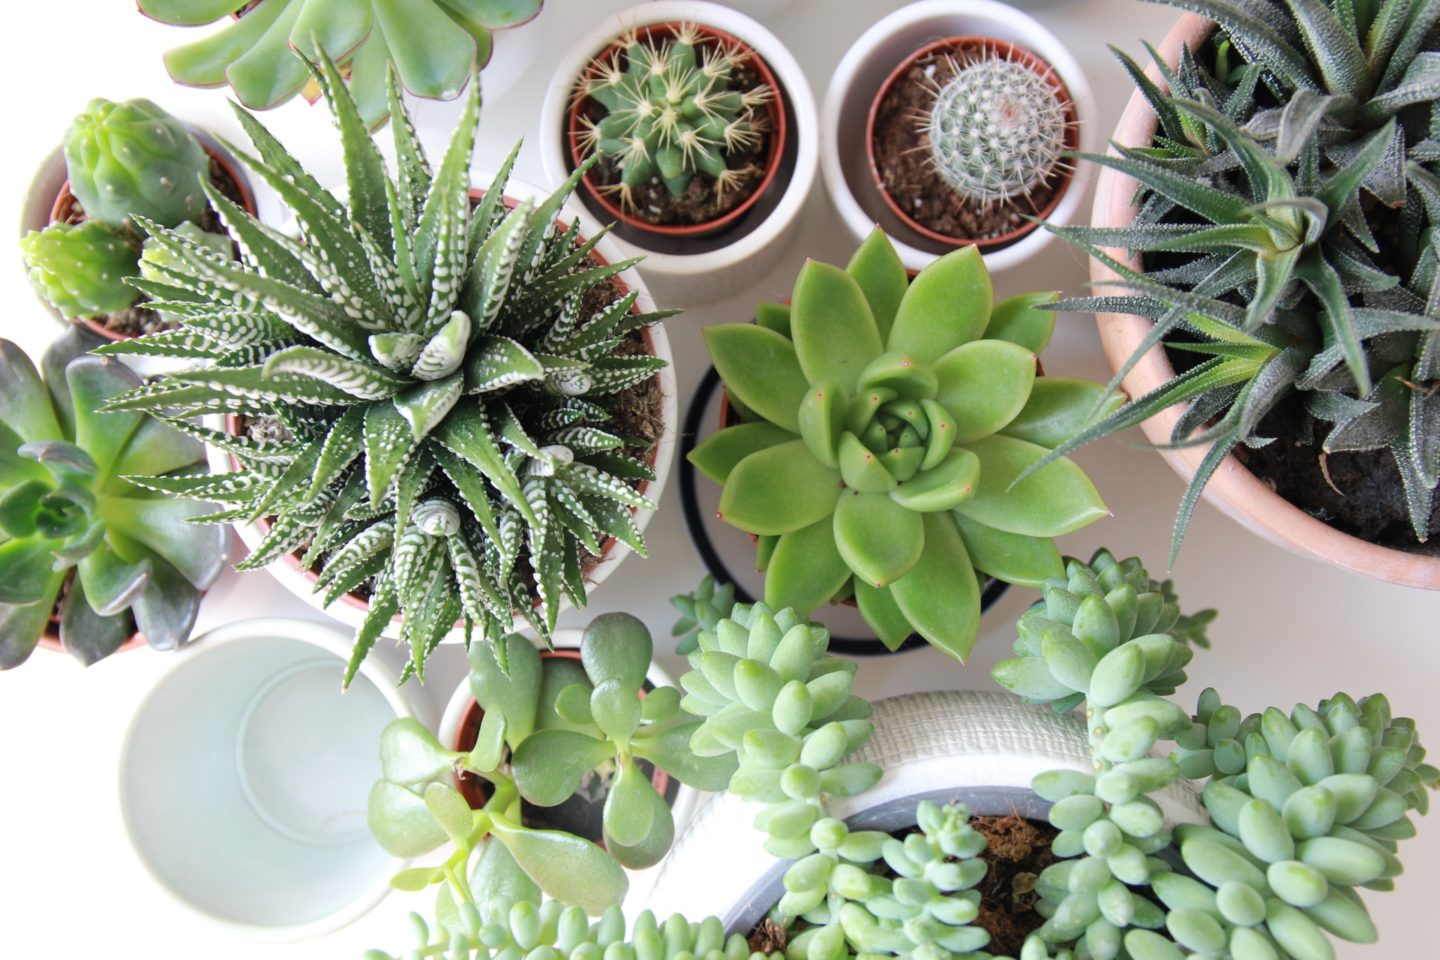 Succulent - beginners guide to houseplants